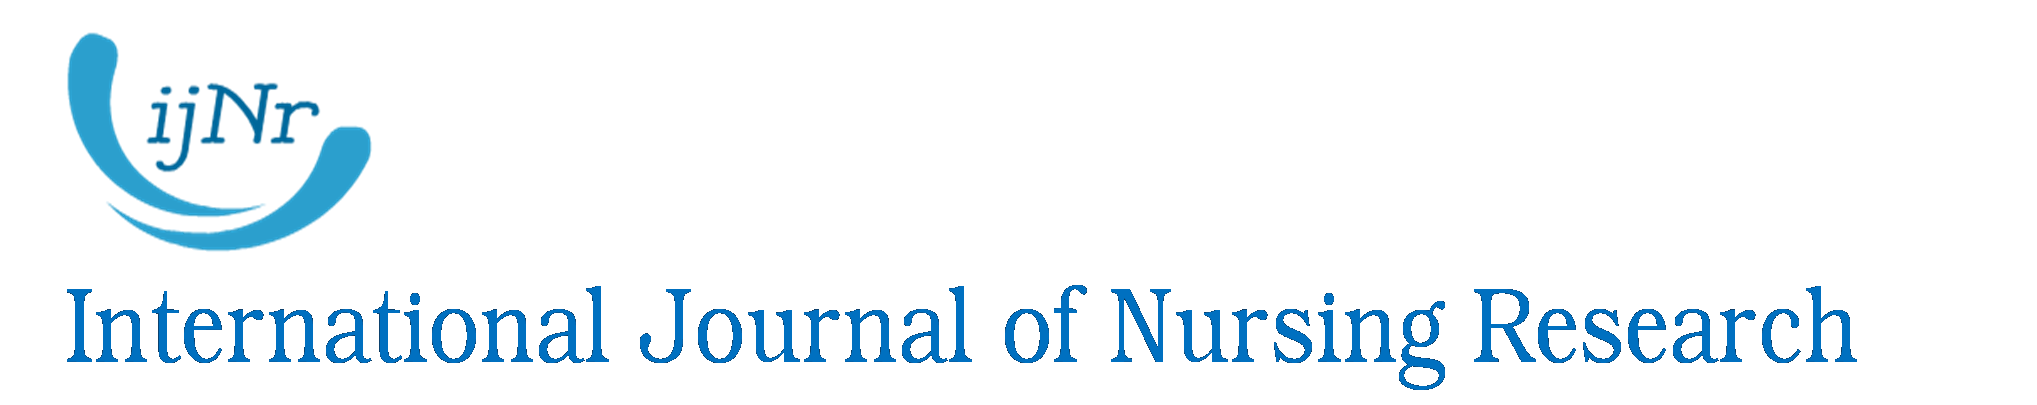 nursing research journals Revised aims and scope of the ijns we would like to draw your attention to the revised aims and scope of the ijns and to an editorial in which these are discussed - griffiths p, norman i j (2011) what is a nursing research journal international journal of nursing studies 48 (11): 1311-1314.